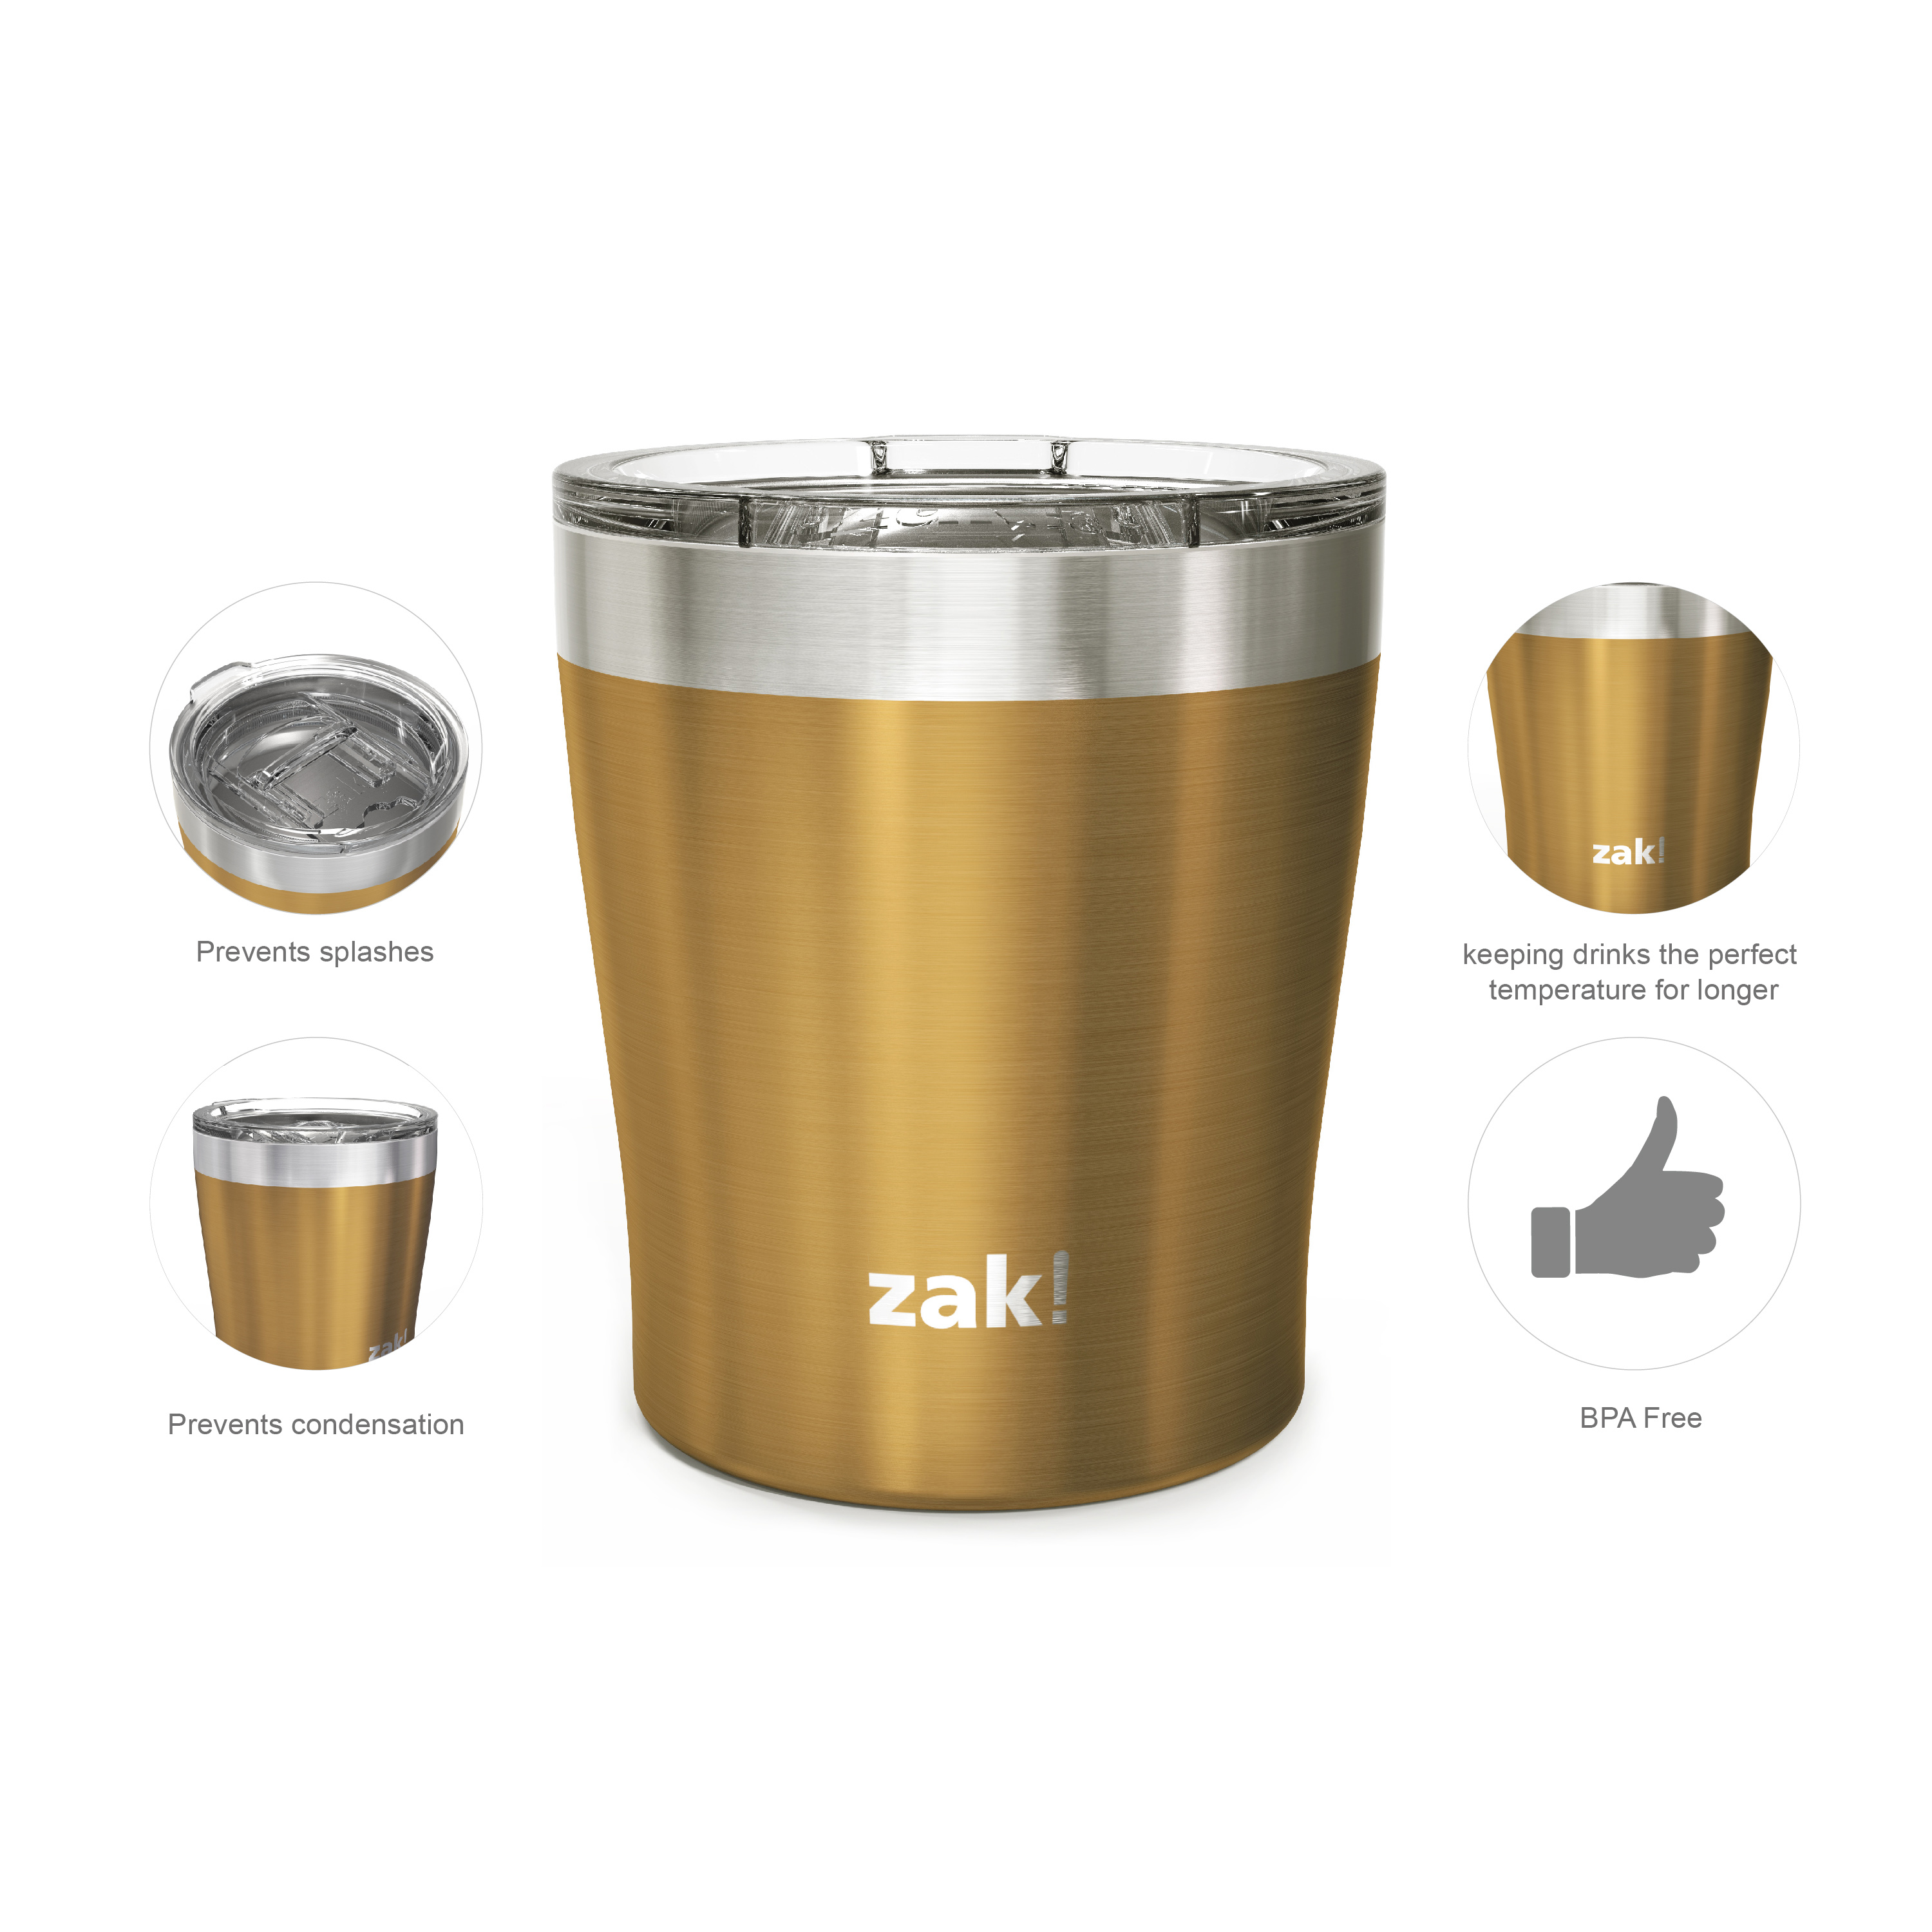 Dayton 10 ounce Vacuum Insulated Stainless Steel Tumbler, Copper, 2-piece set slideshow image 5